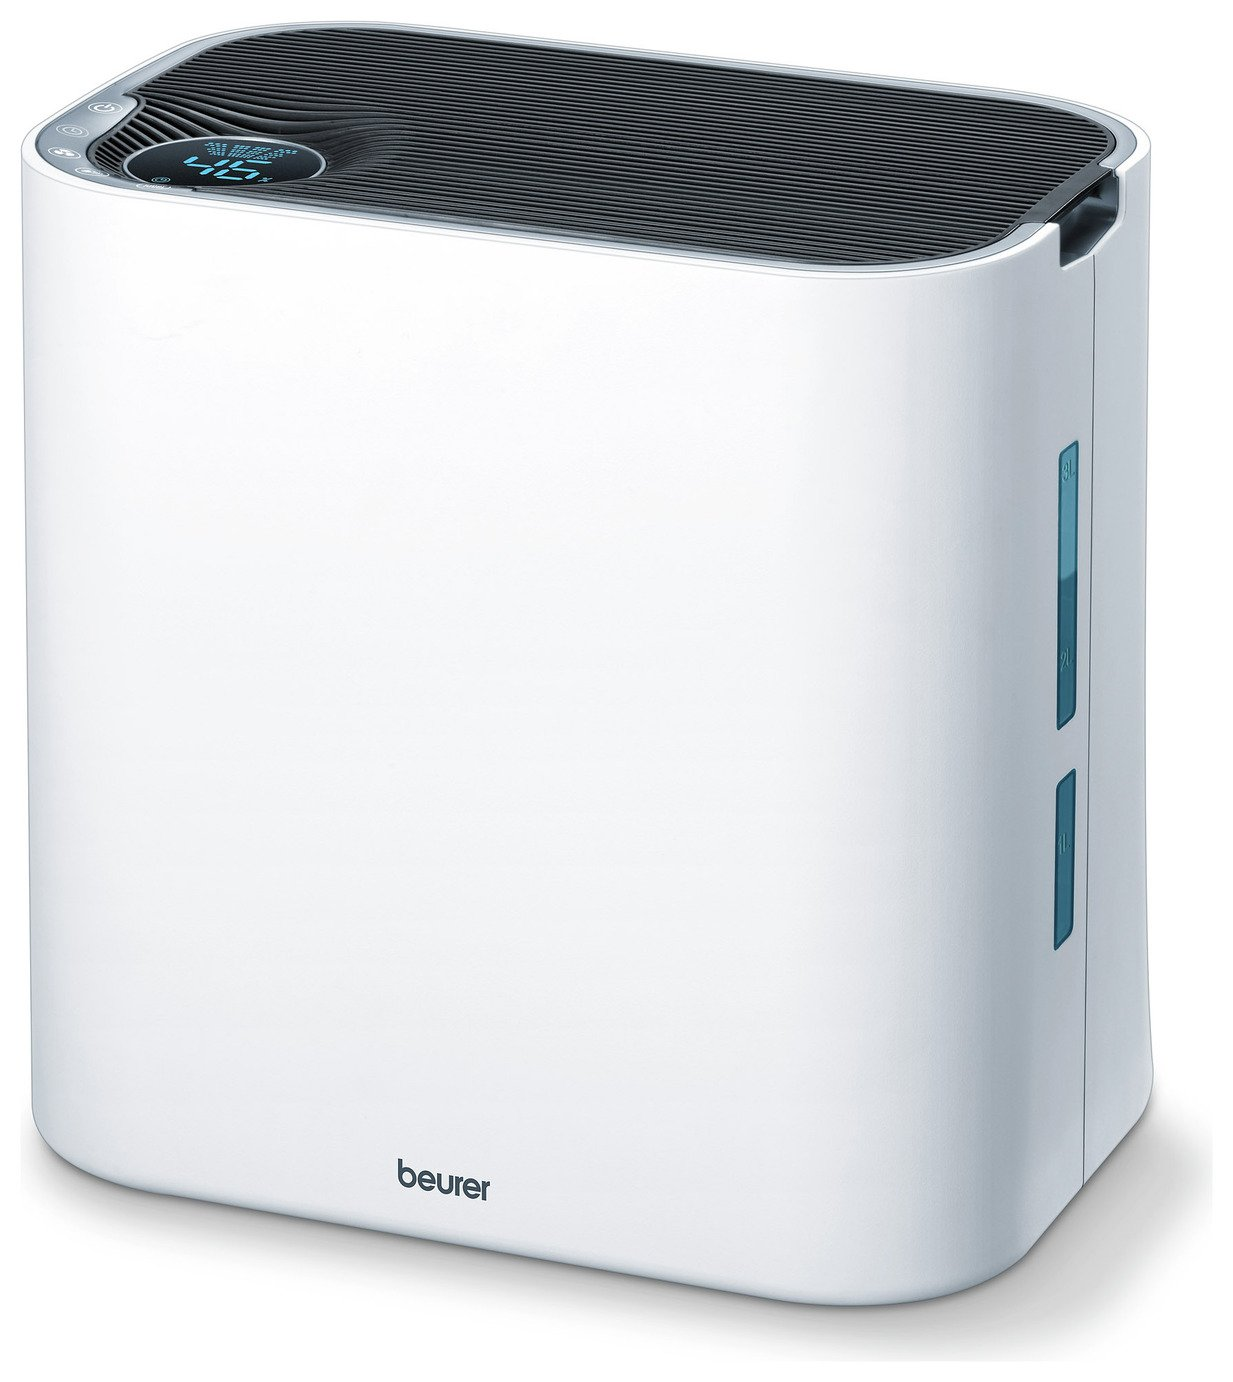 Beurer LR330 2 in 1 Air Cleaner and Humidifier